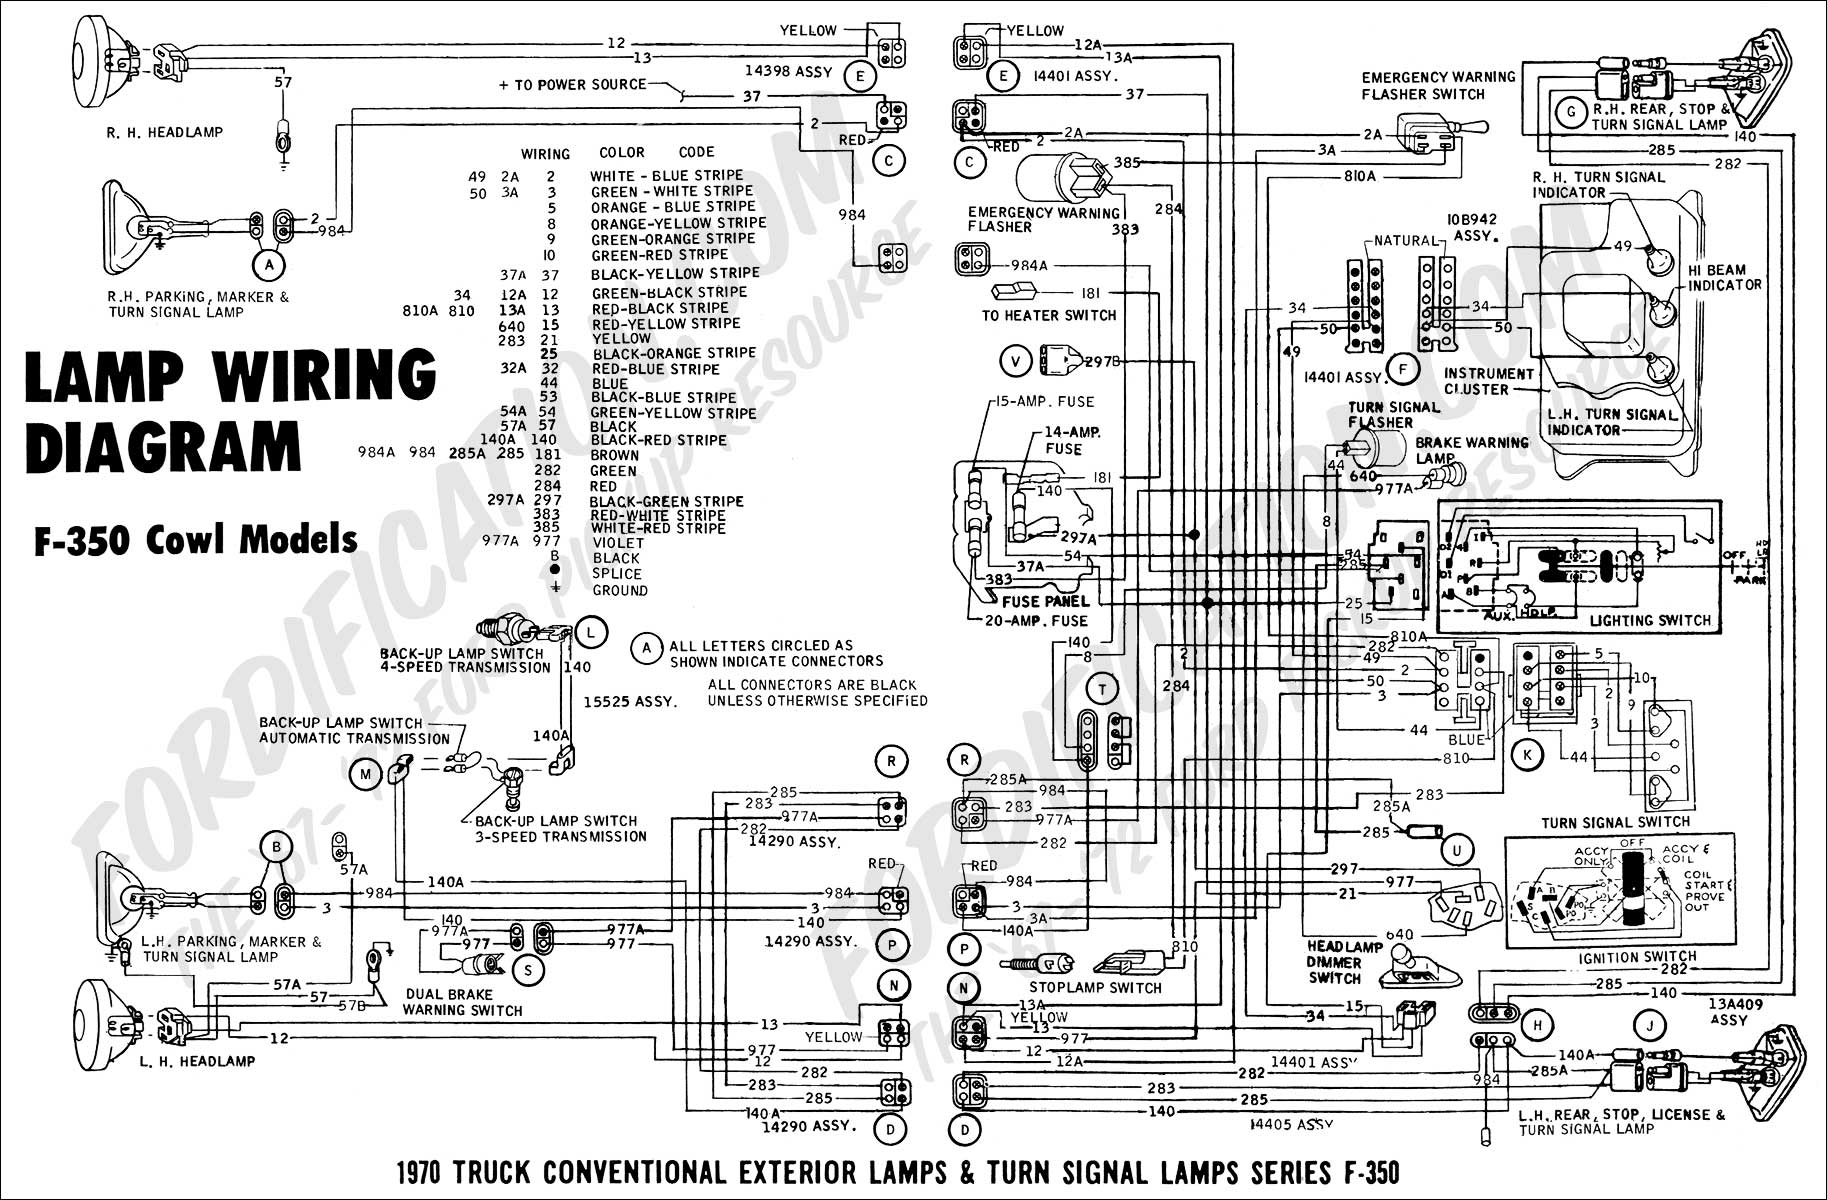 2006 ford escape headlight wiring diagram toyota celica 1999 f250 dome light switch autos post